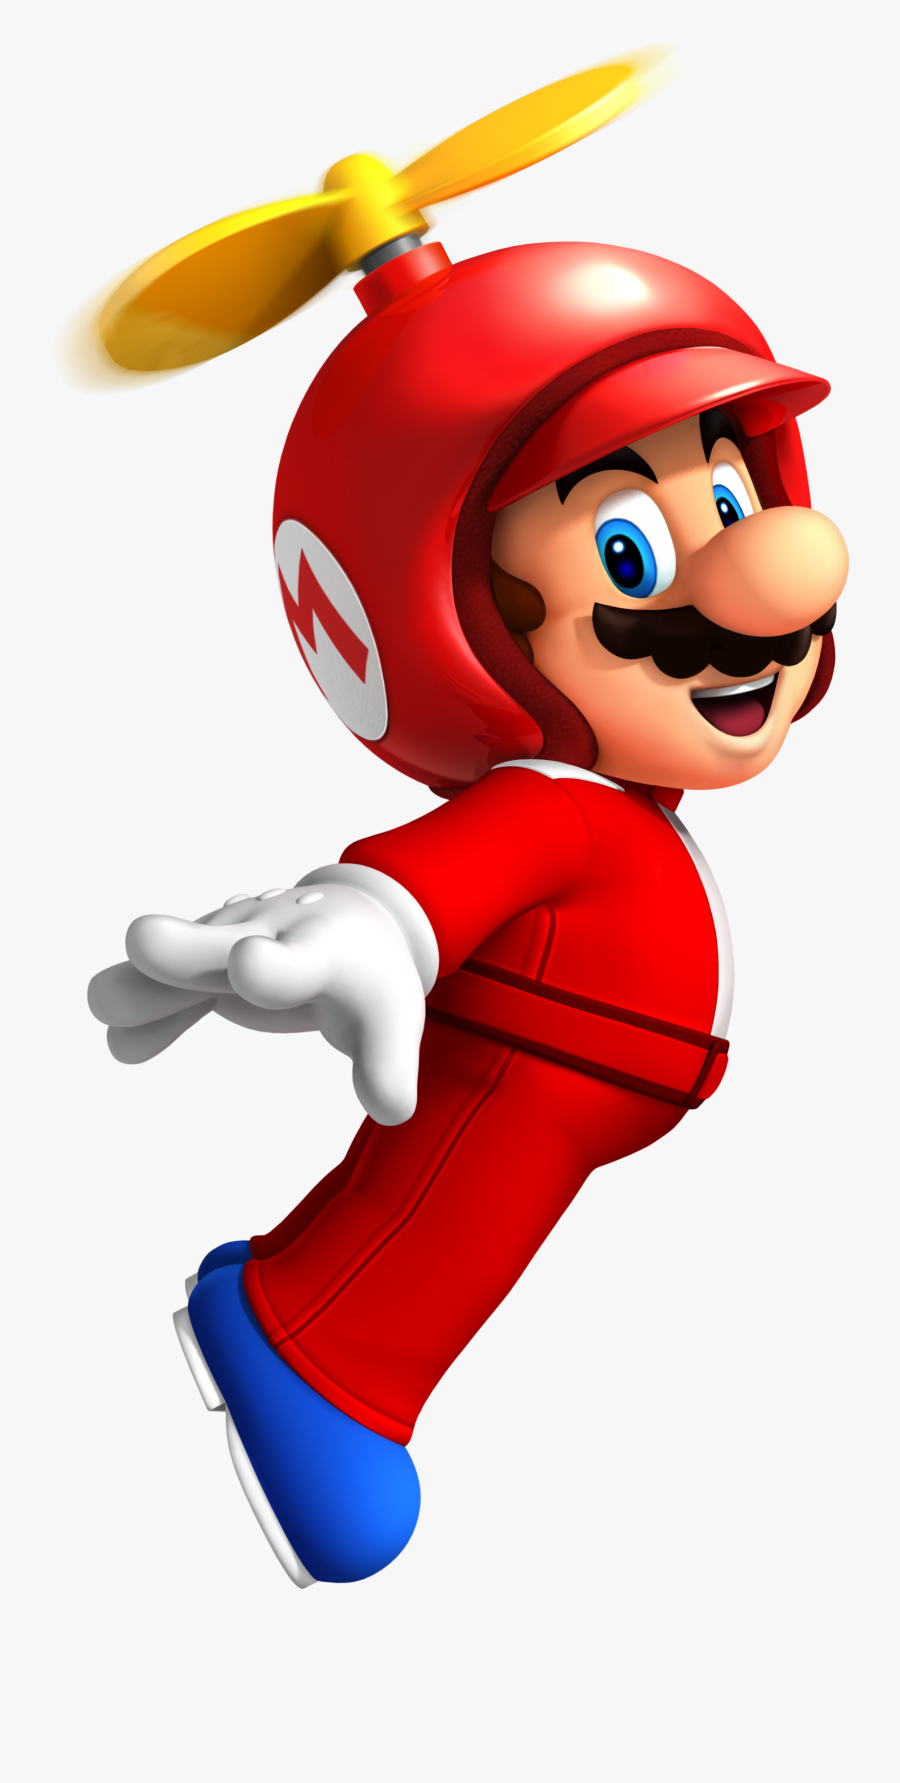 Mario Clipart Transparent Png Images - New Super Mario Bros Wii Mario, Transparent Clipart